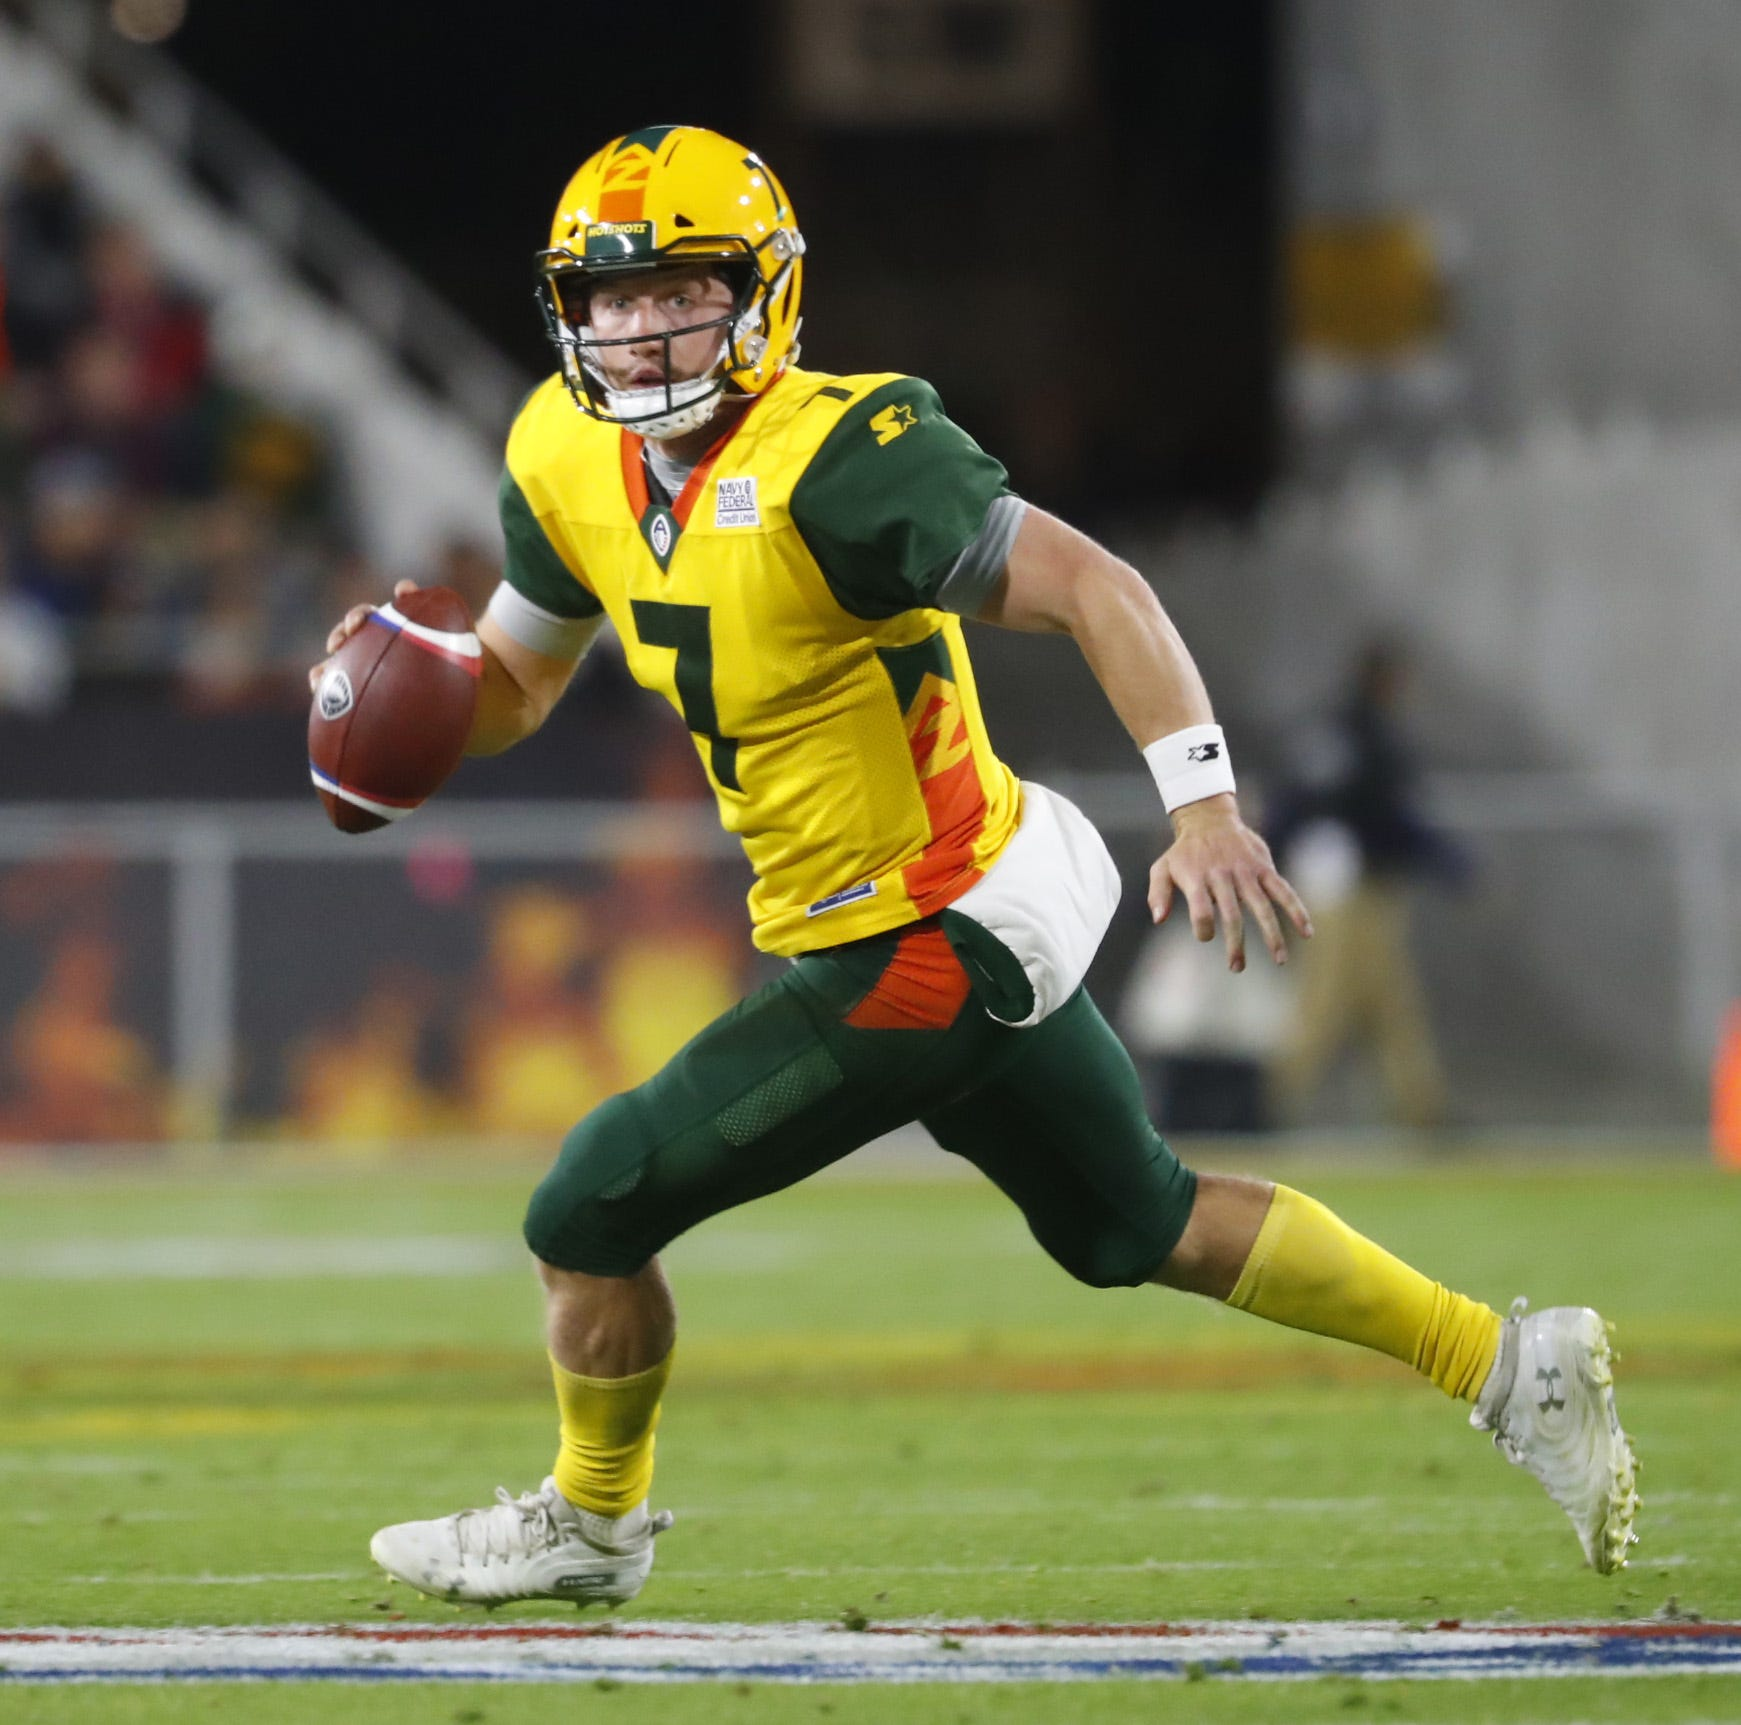 Arizona Hotshots hang on in Memphis for second AAF win